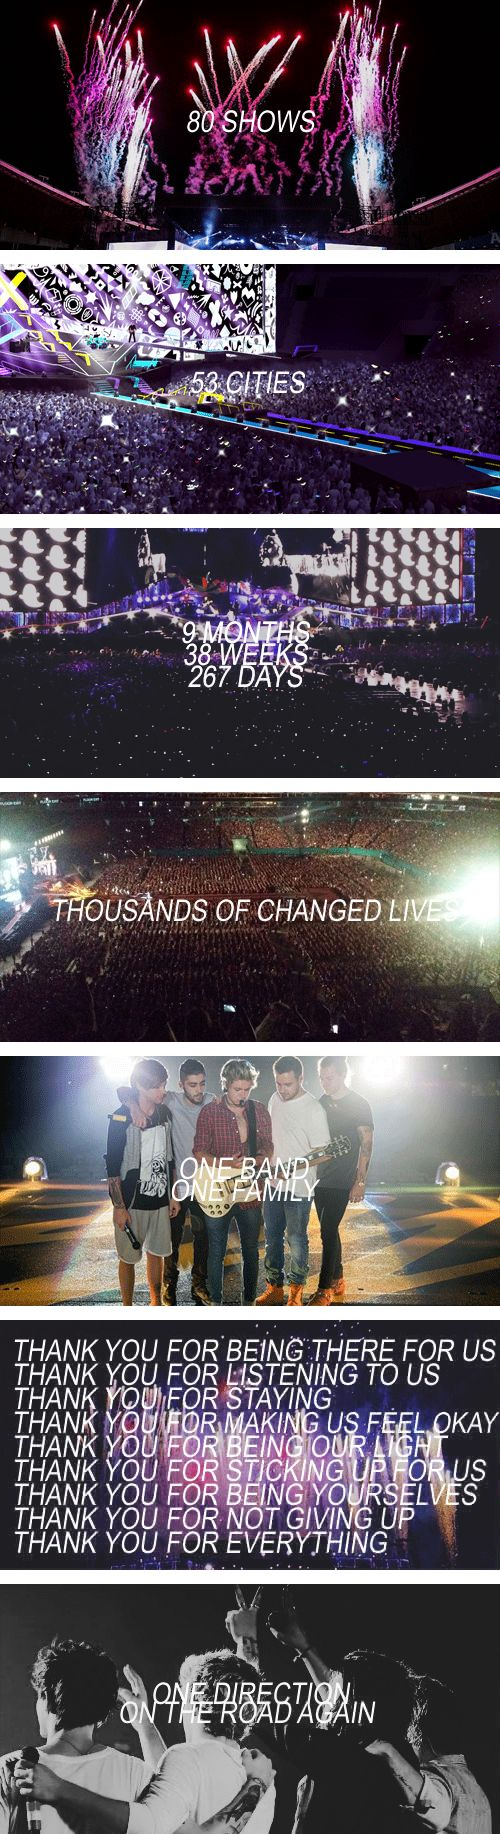 One Direction | On The Road Again | February 7 - October 31 |